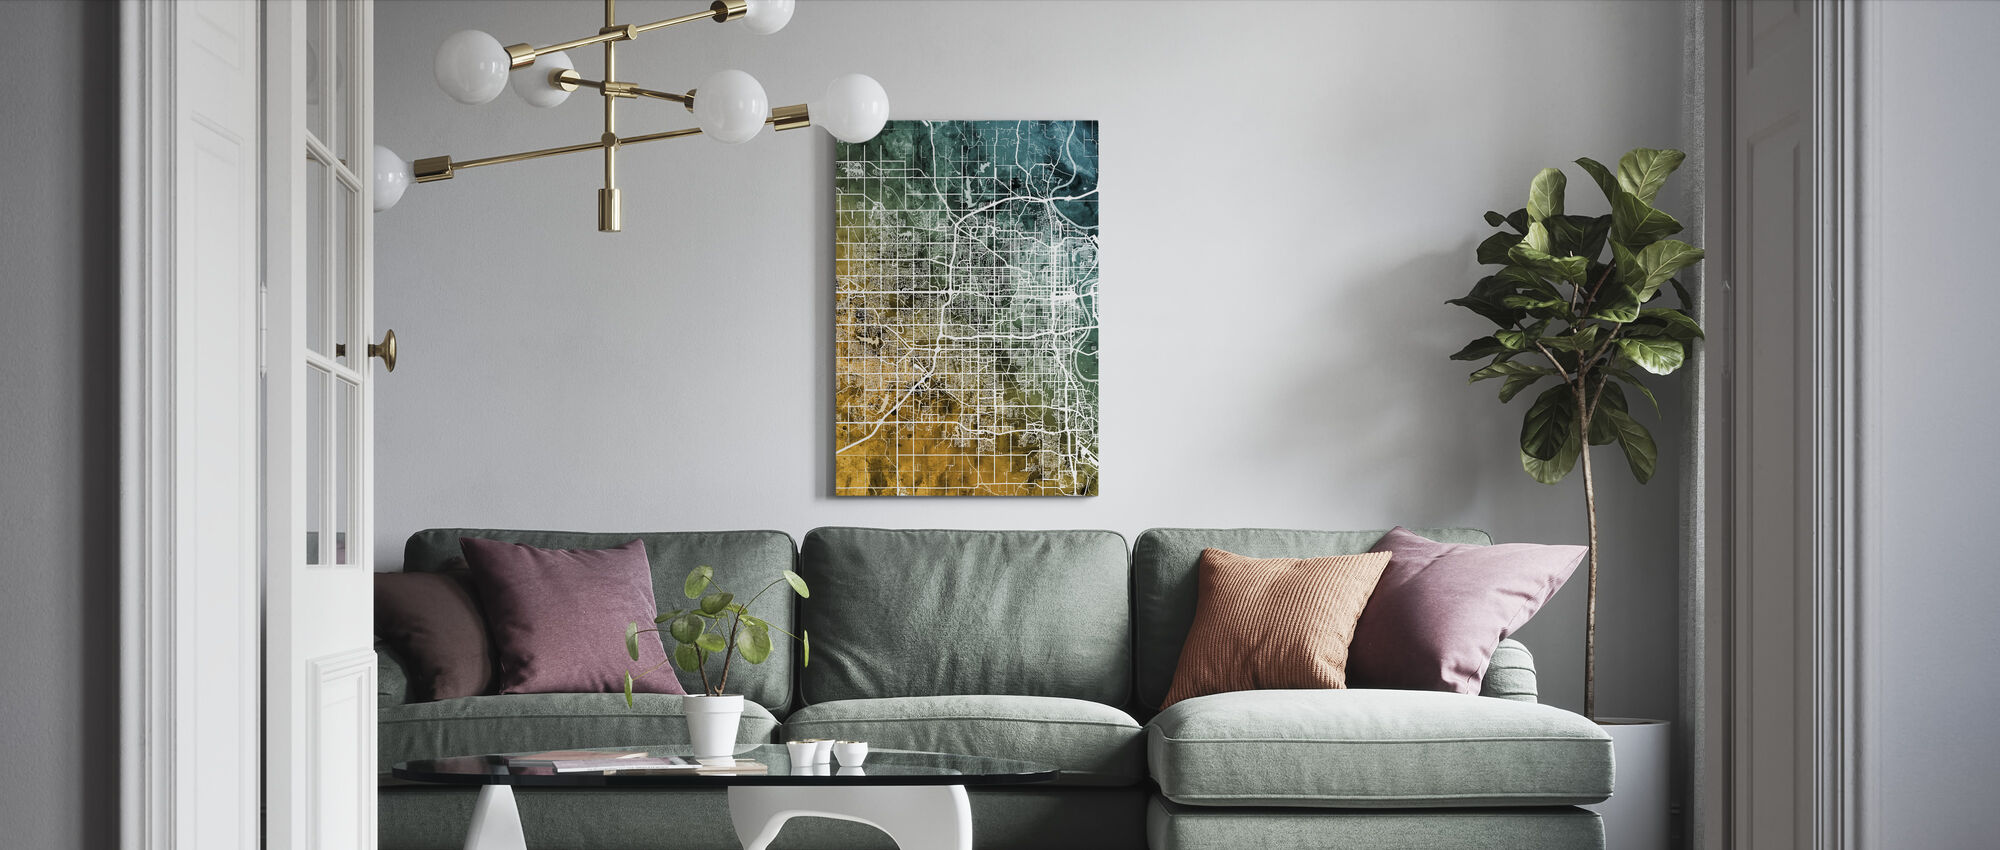 Omaha Nebraska City Map - Canvas print - Living Room